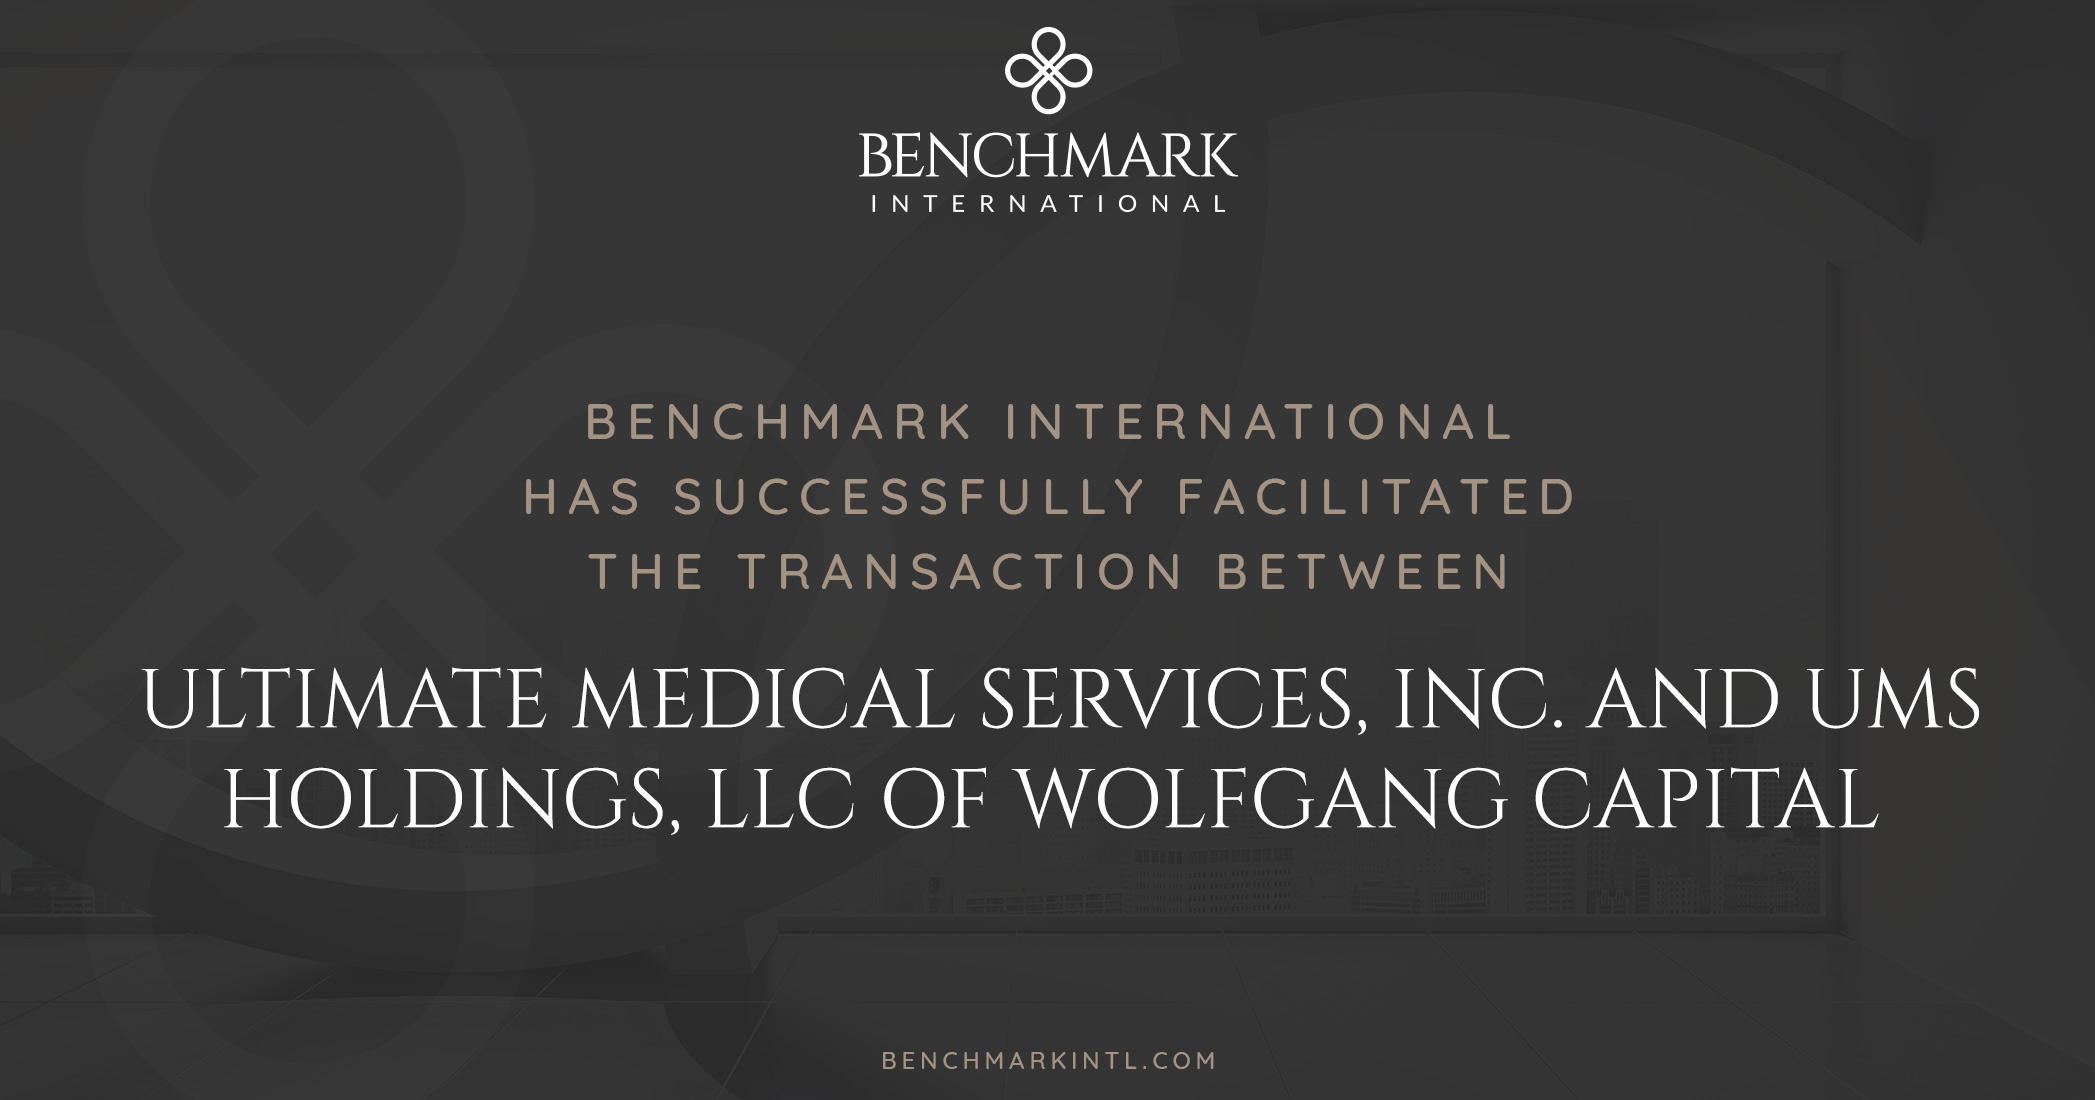 Benchmark International Successfully Facilitated the Transaction Between Ultimate Medical Services, Inc. and UMS Holdings, LLC of WolfGang Capital